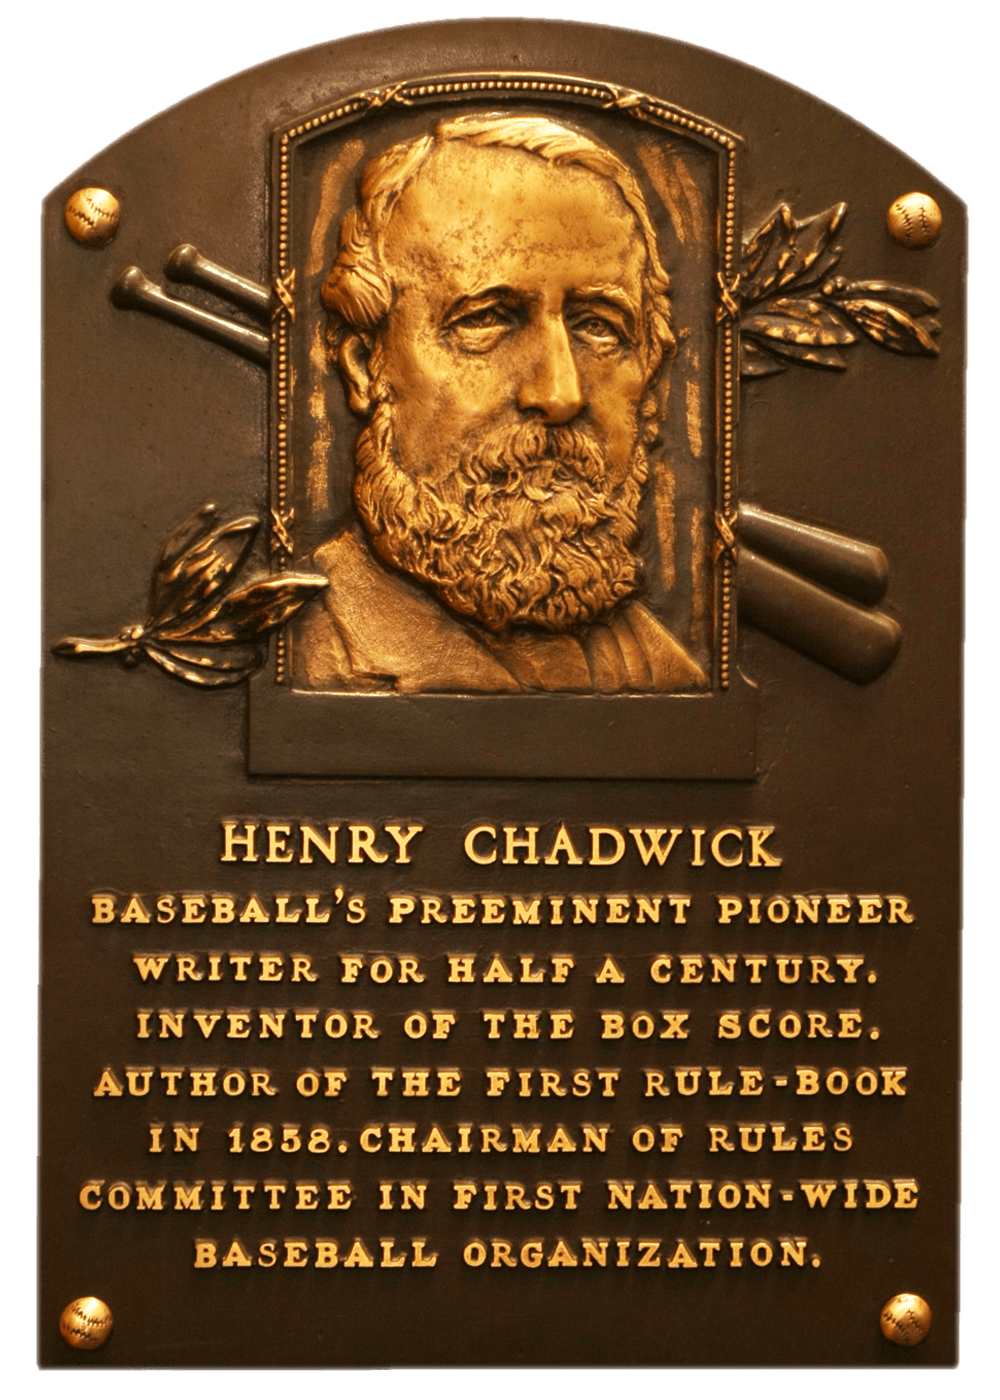 Henry Chadwick Baseball Hall of Fame Plaque